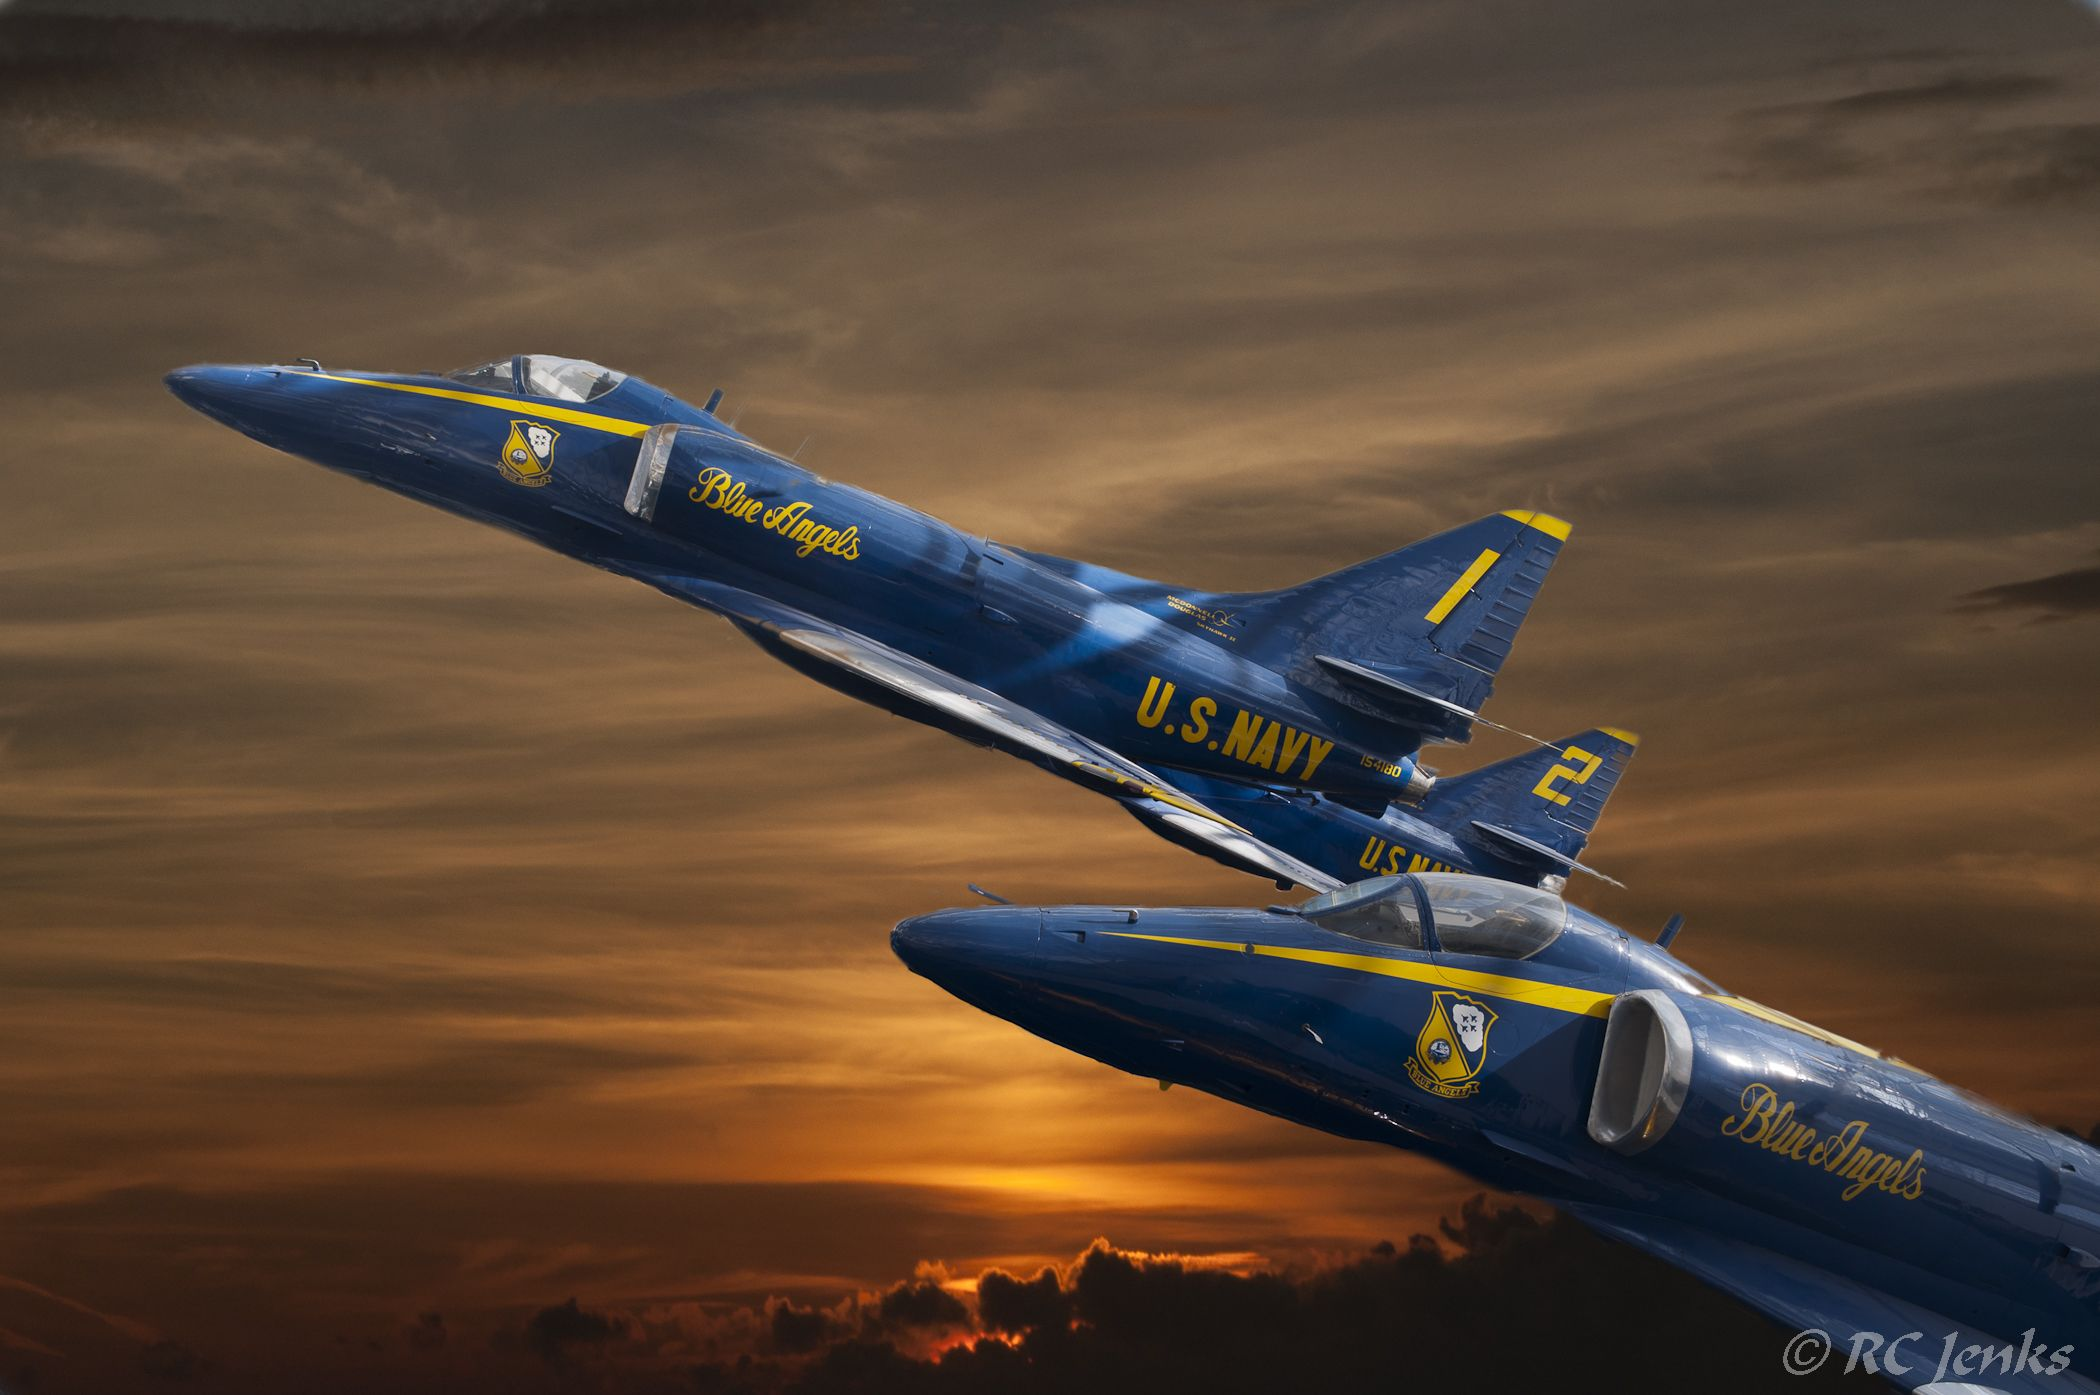 Blue Angels (With images) Fighter jets, Naval, Fighter